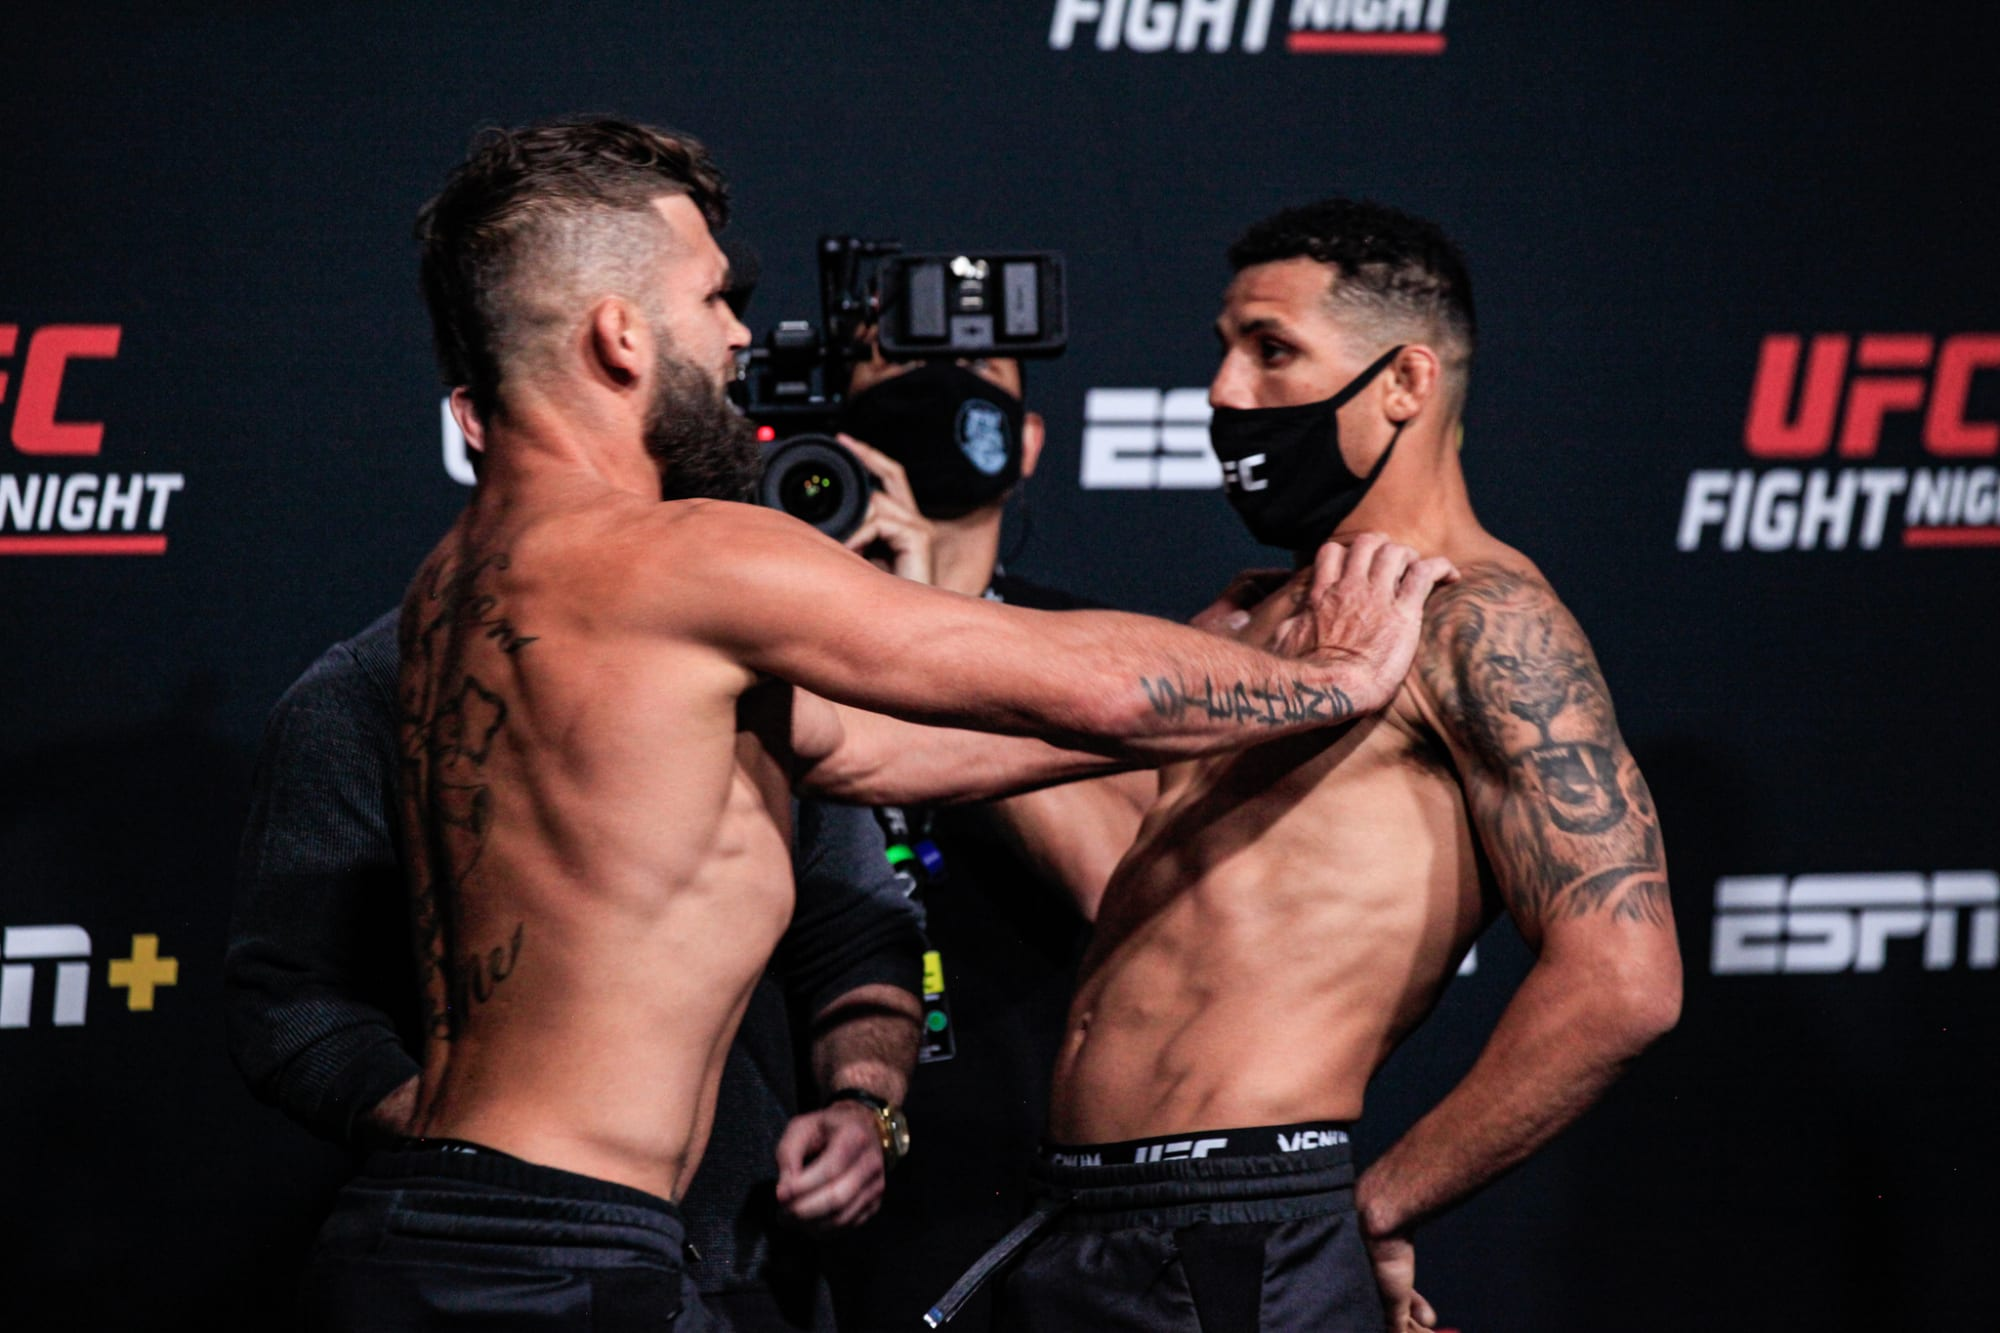 UFC Vegas 24: Drakkar Klose releases lengthy statement following fight cancellation after face-off shove